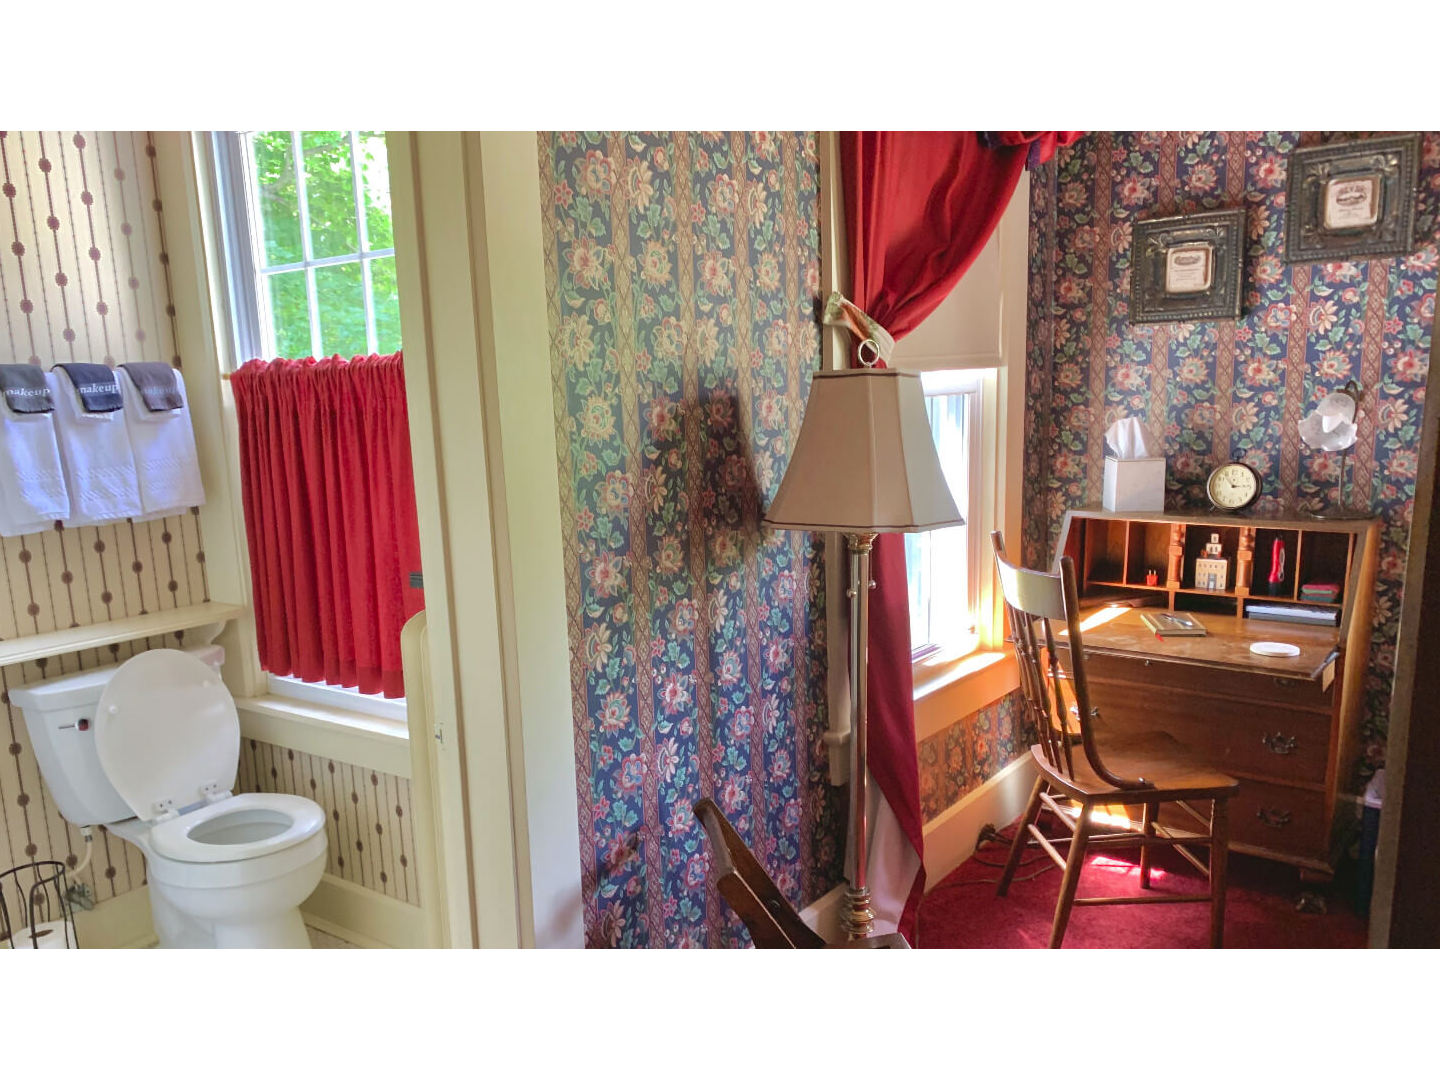 A view of a room at Chestnut Street Inn.